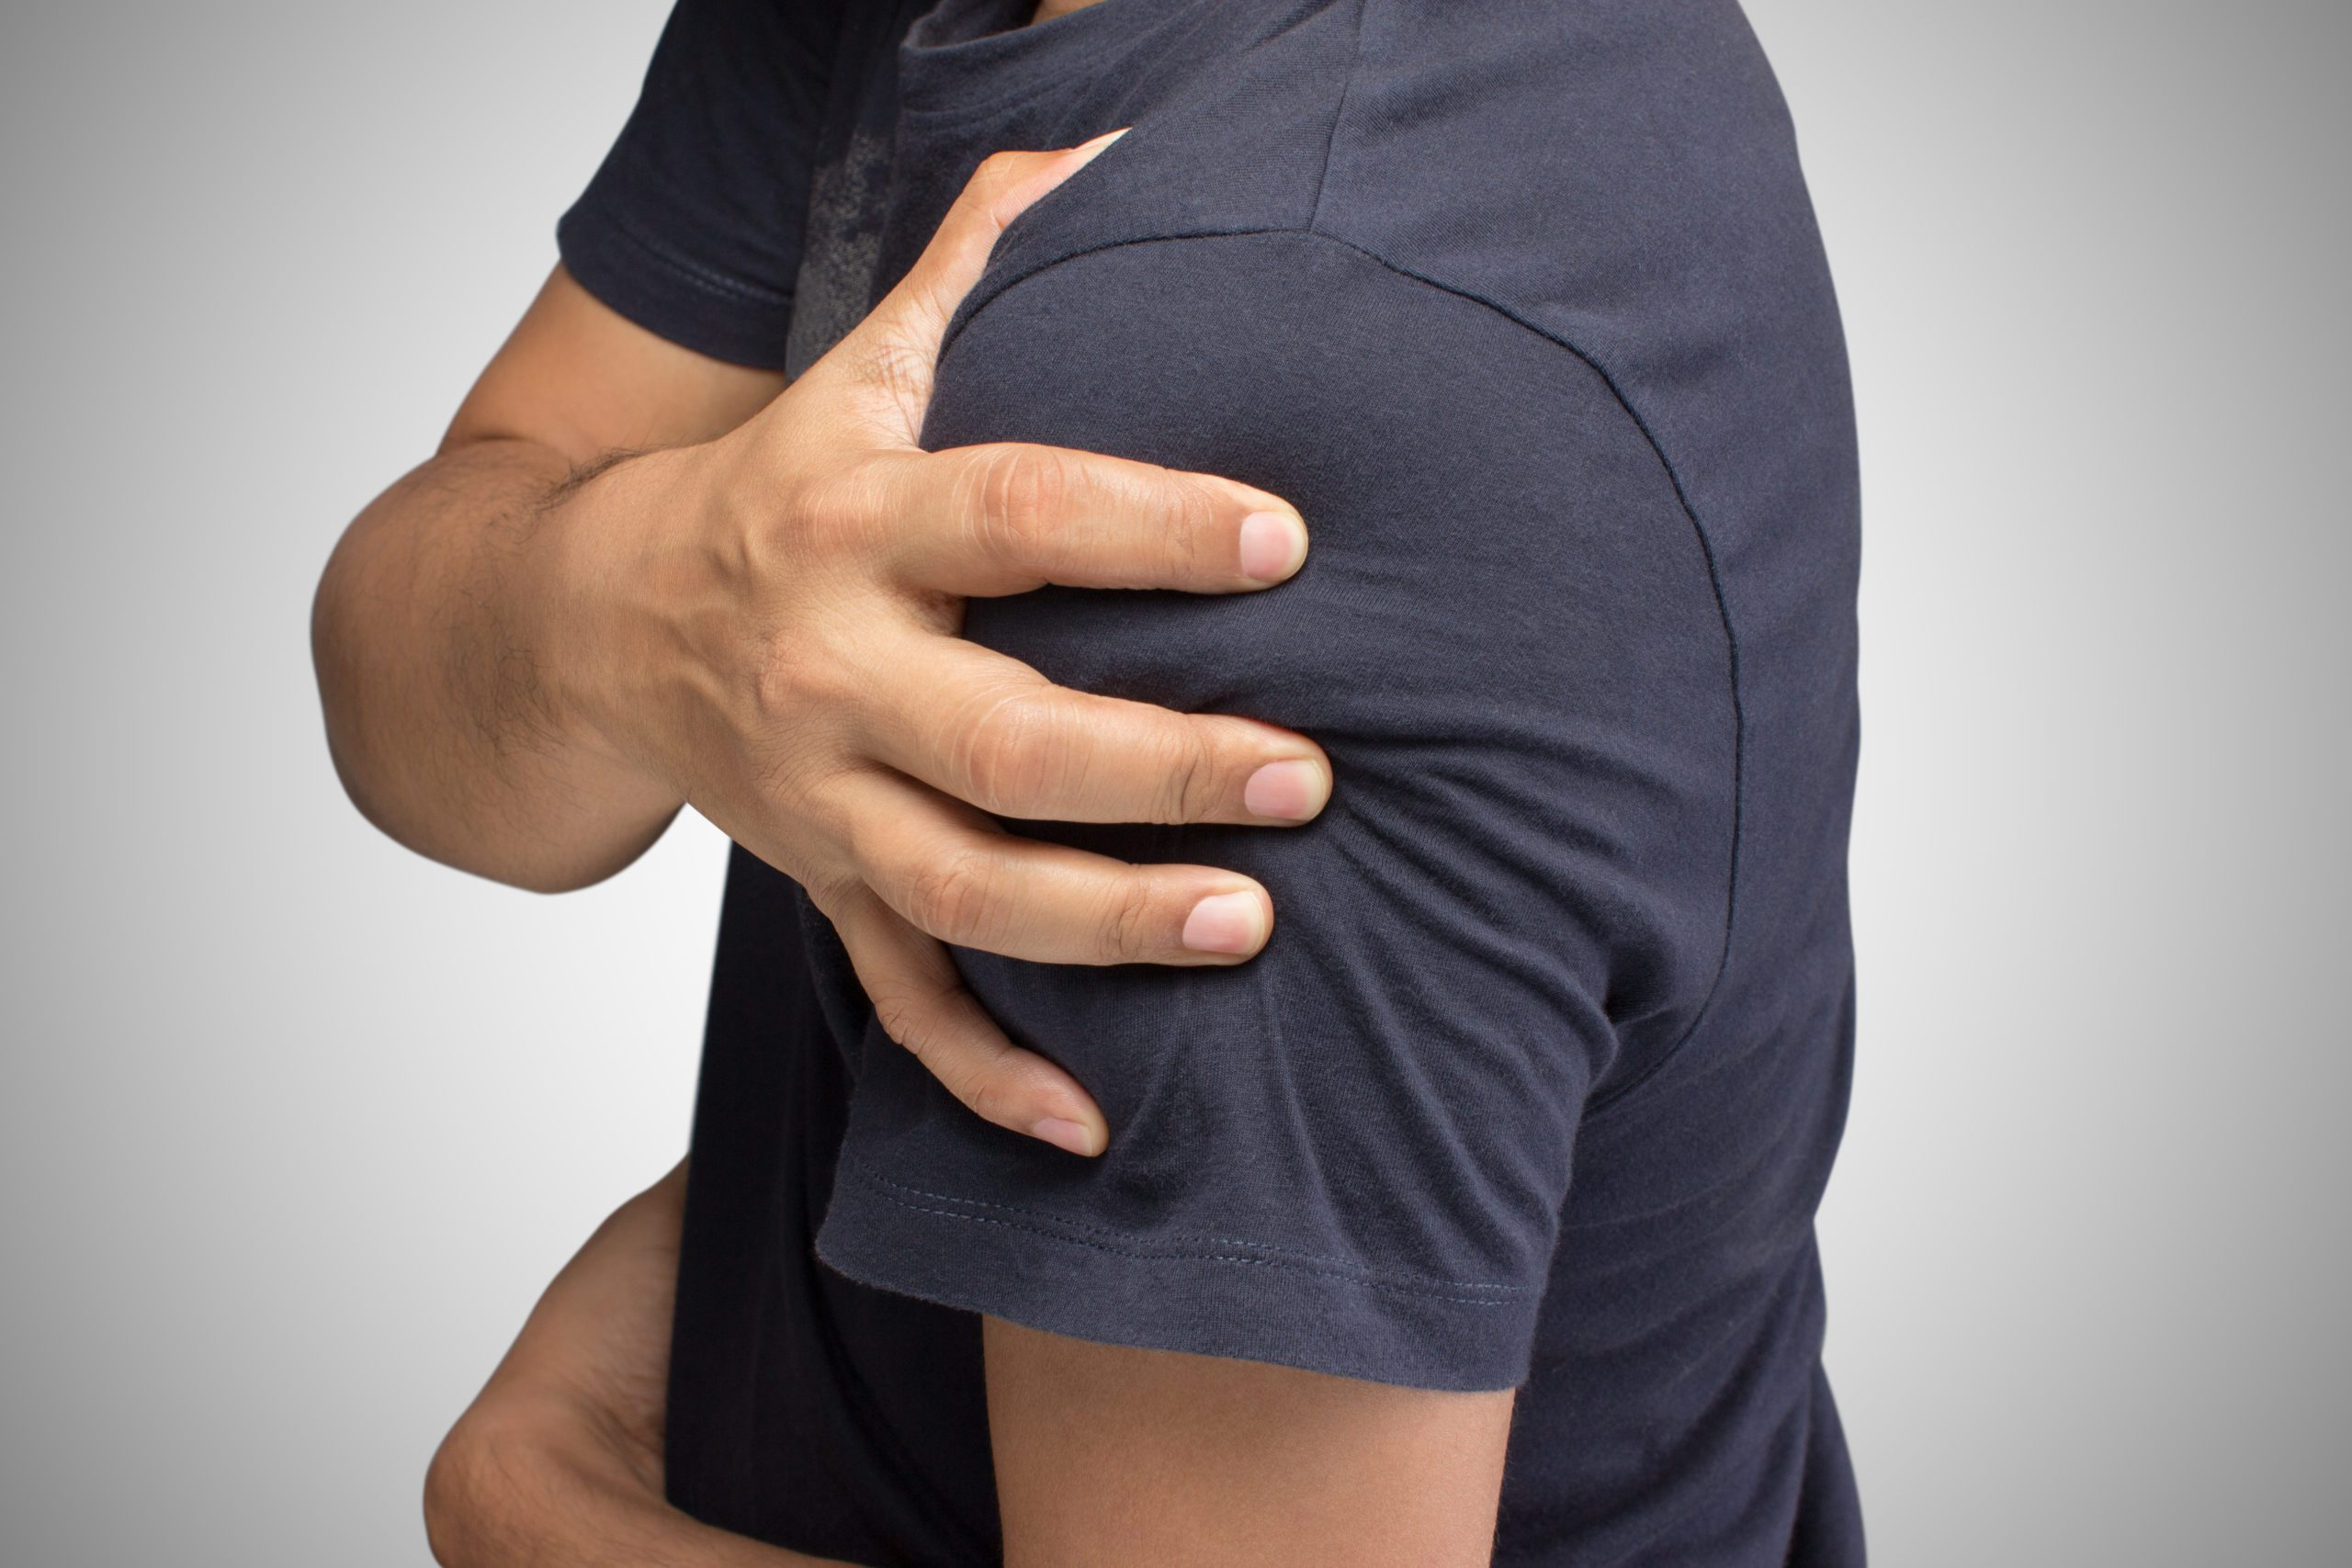 How To Fix Body Posture Mistakes